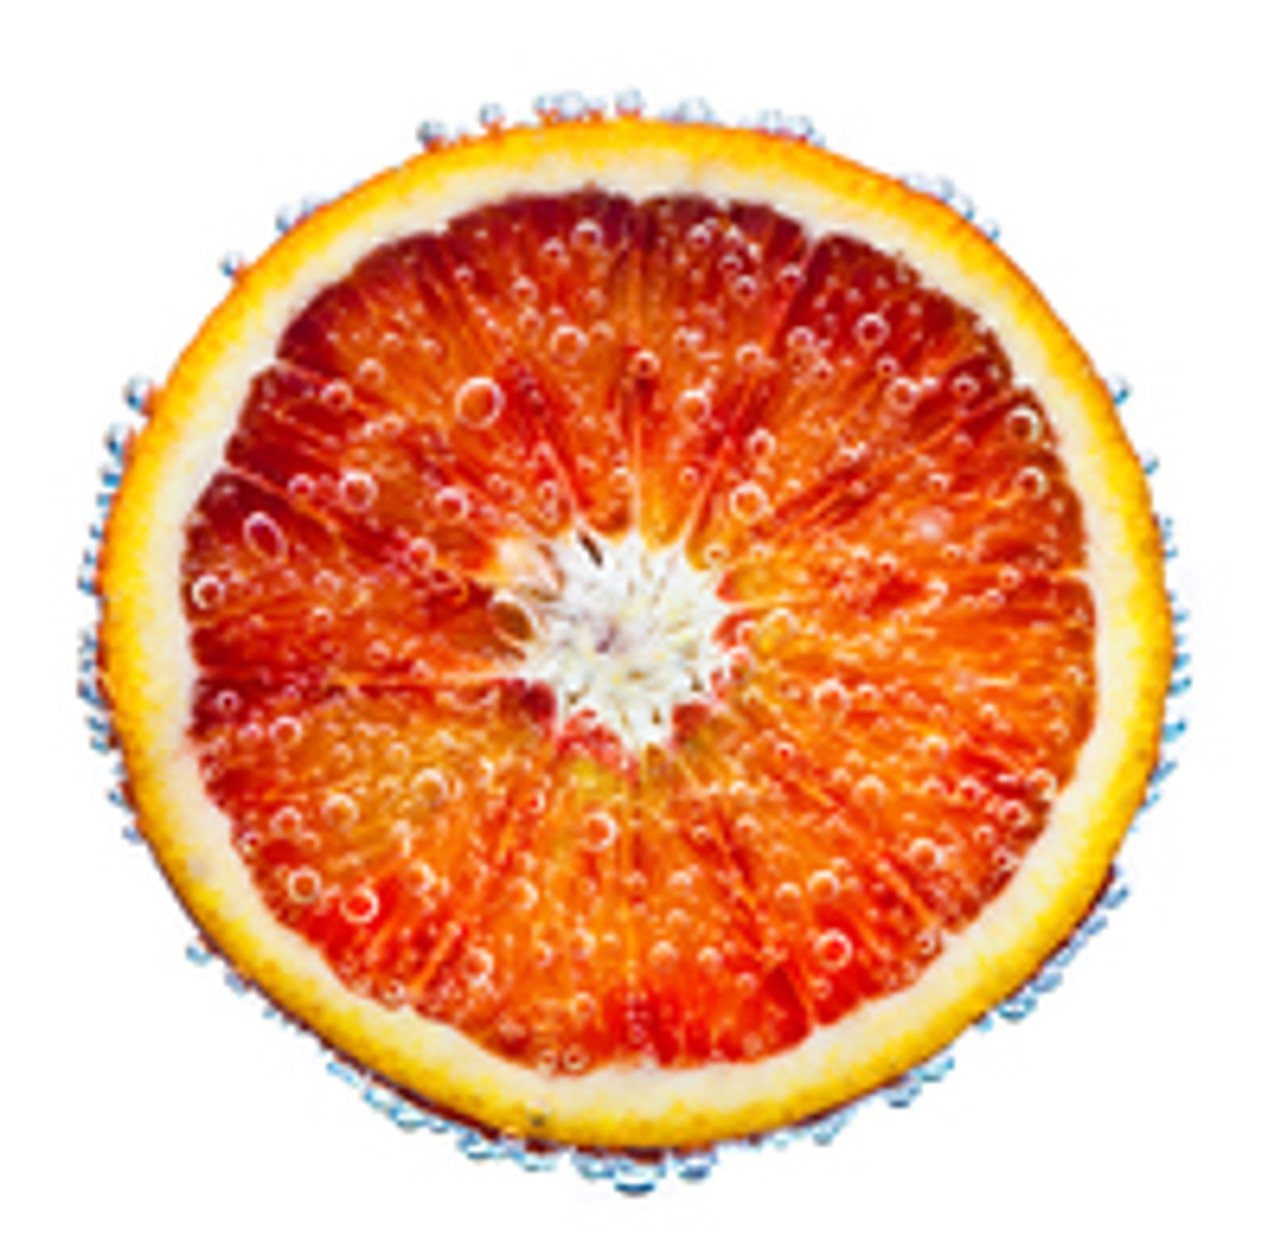 3 reasons to add Vitamin C to your skin care regimen